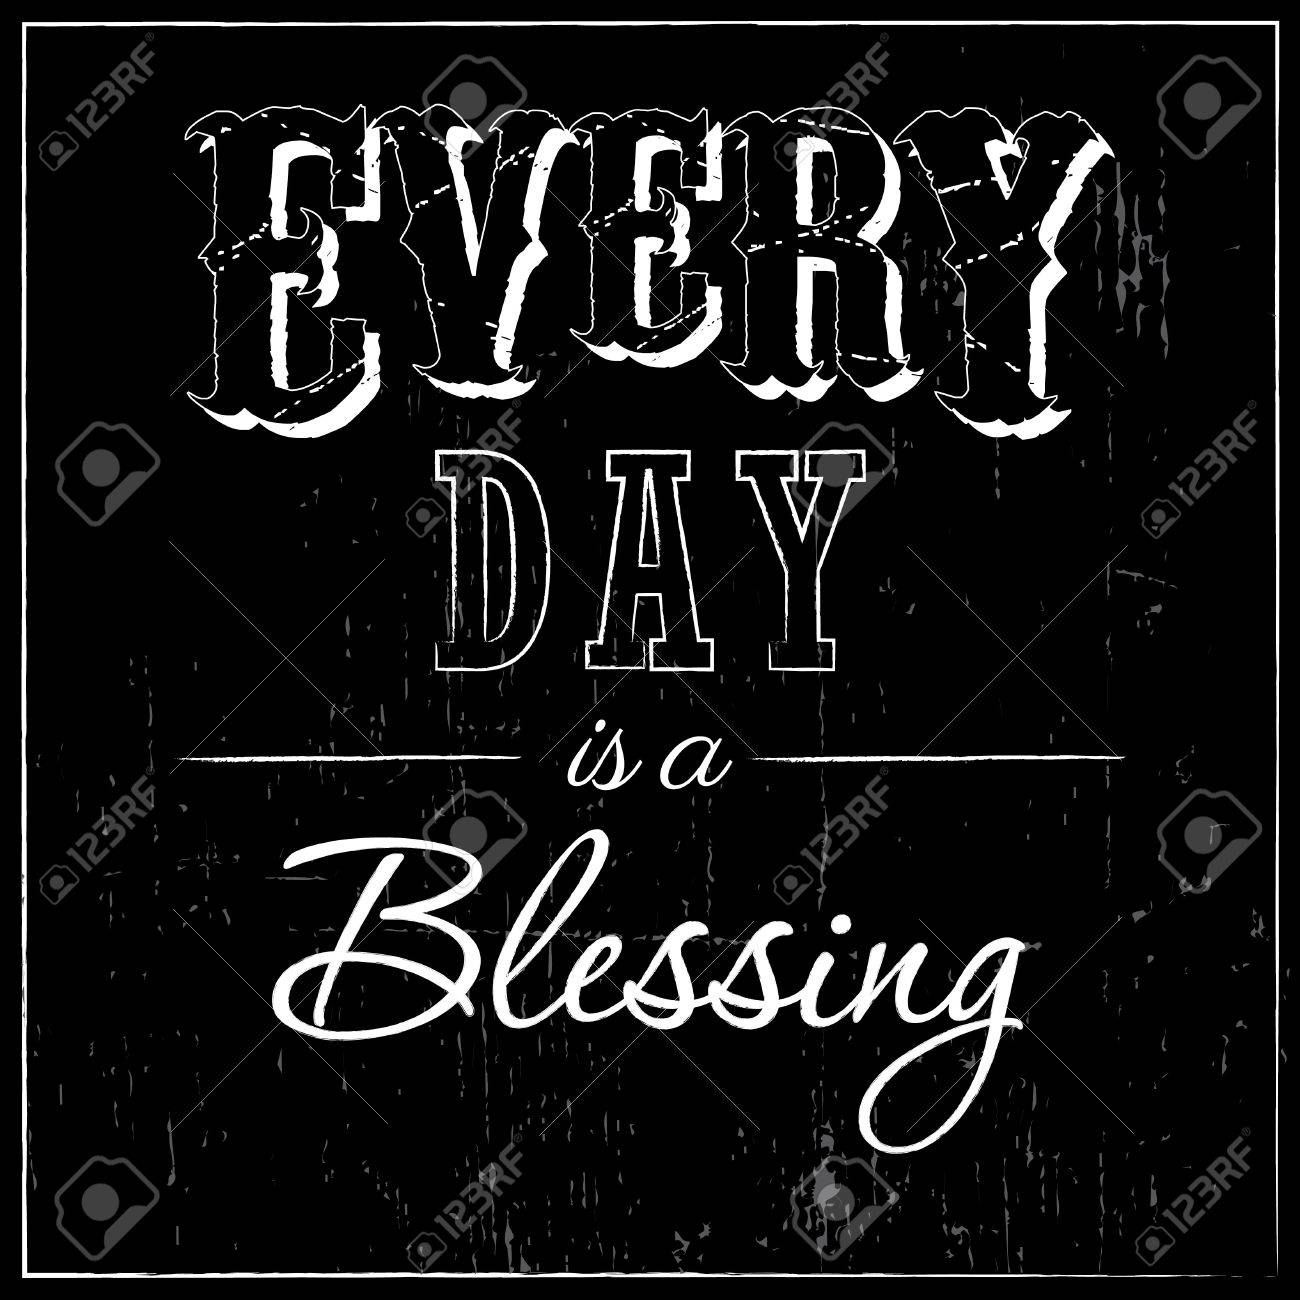 Every Day Is A Blessing Typographic Design Royalty Free Cliparts